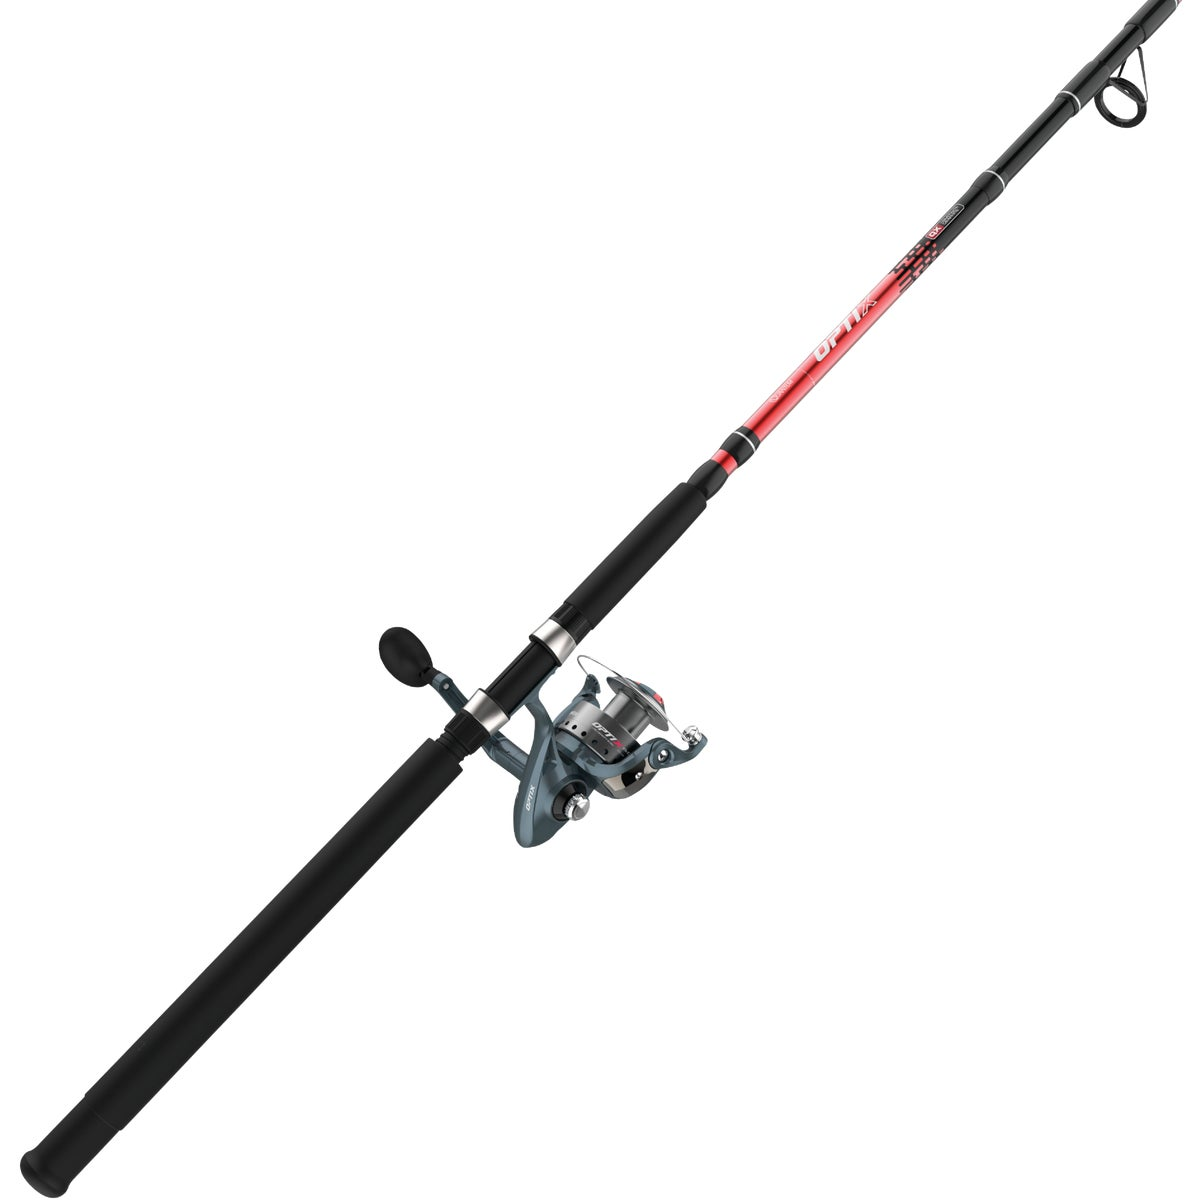 8' MED SPINNING ROD/REEL - OP8080MB by Zebco